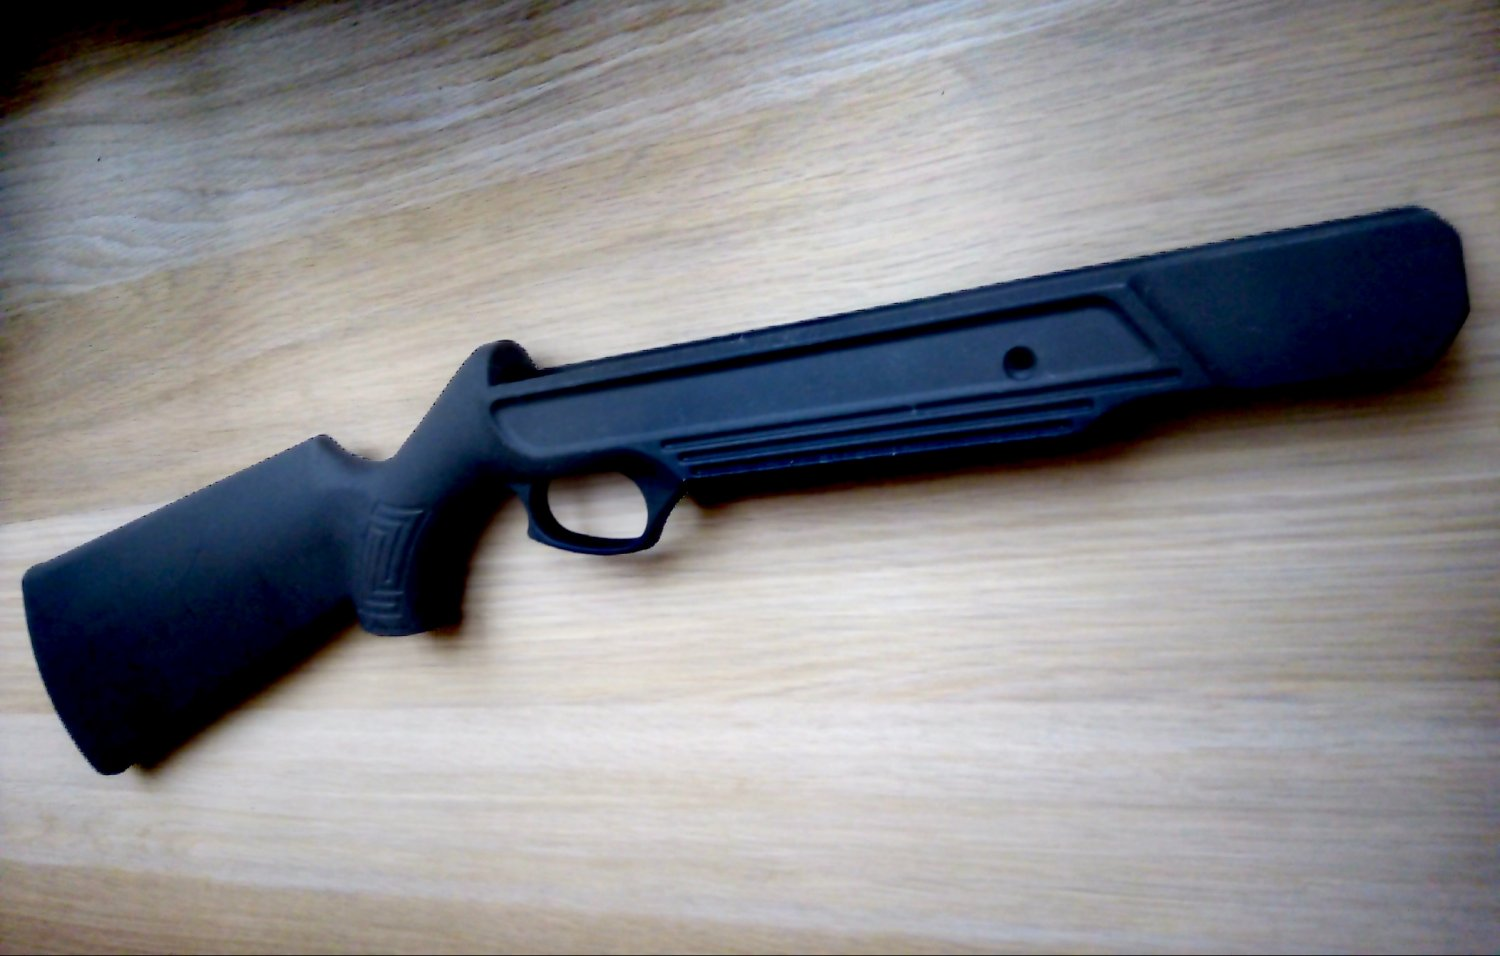 mp-512 butt stock of improved design baikal with more even shape made from reinforsed plastic.